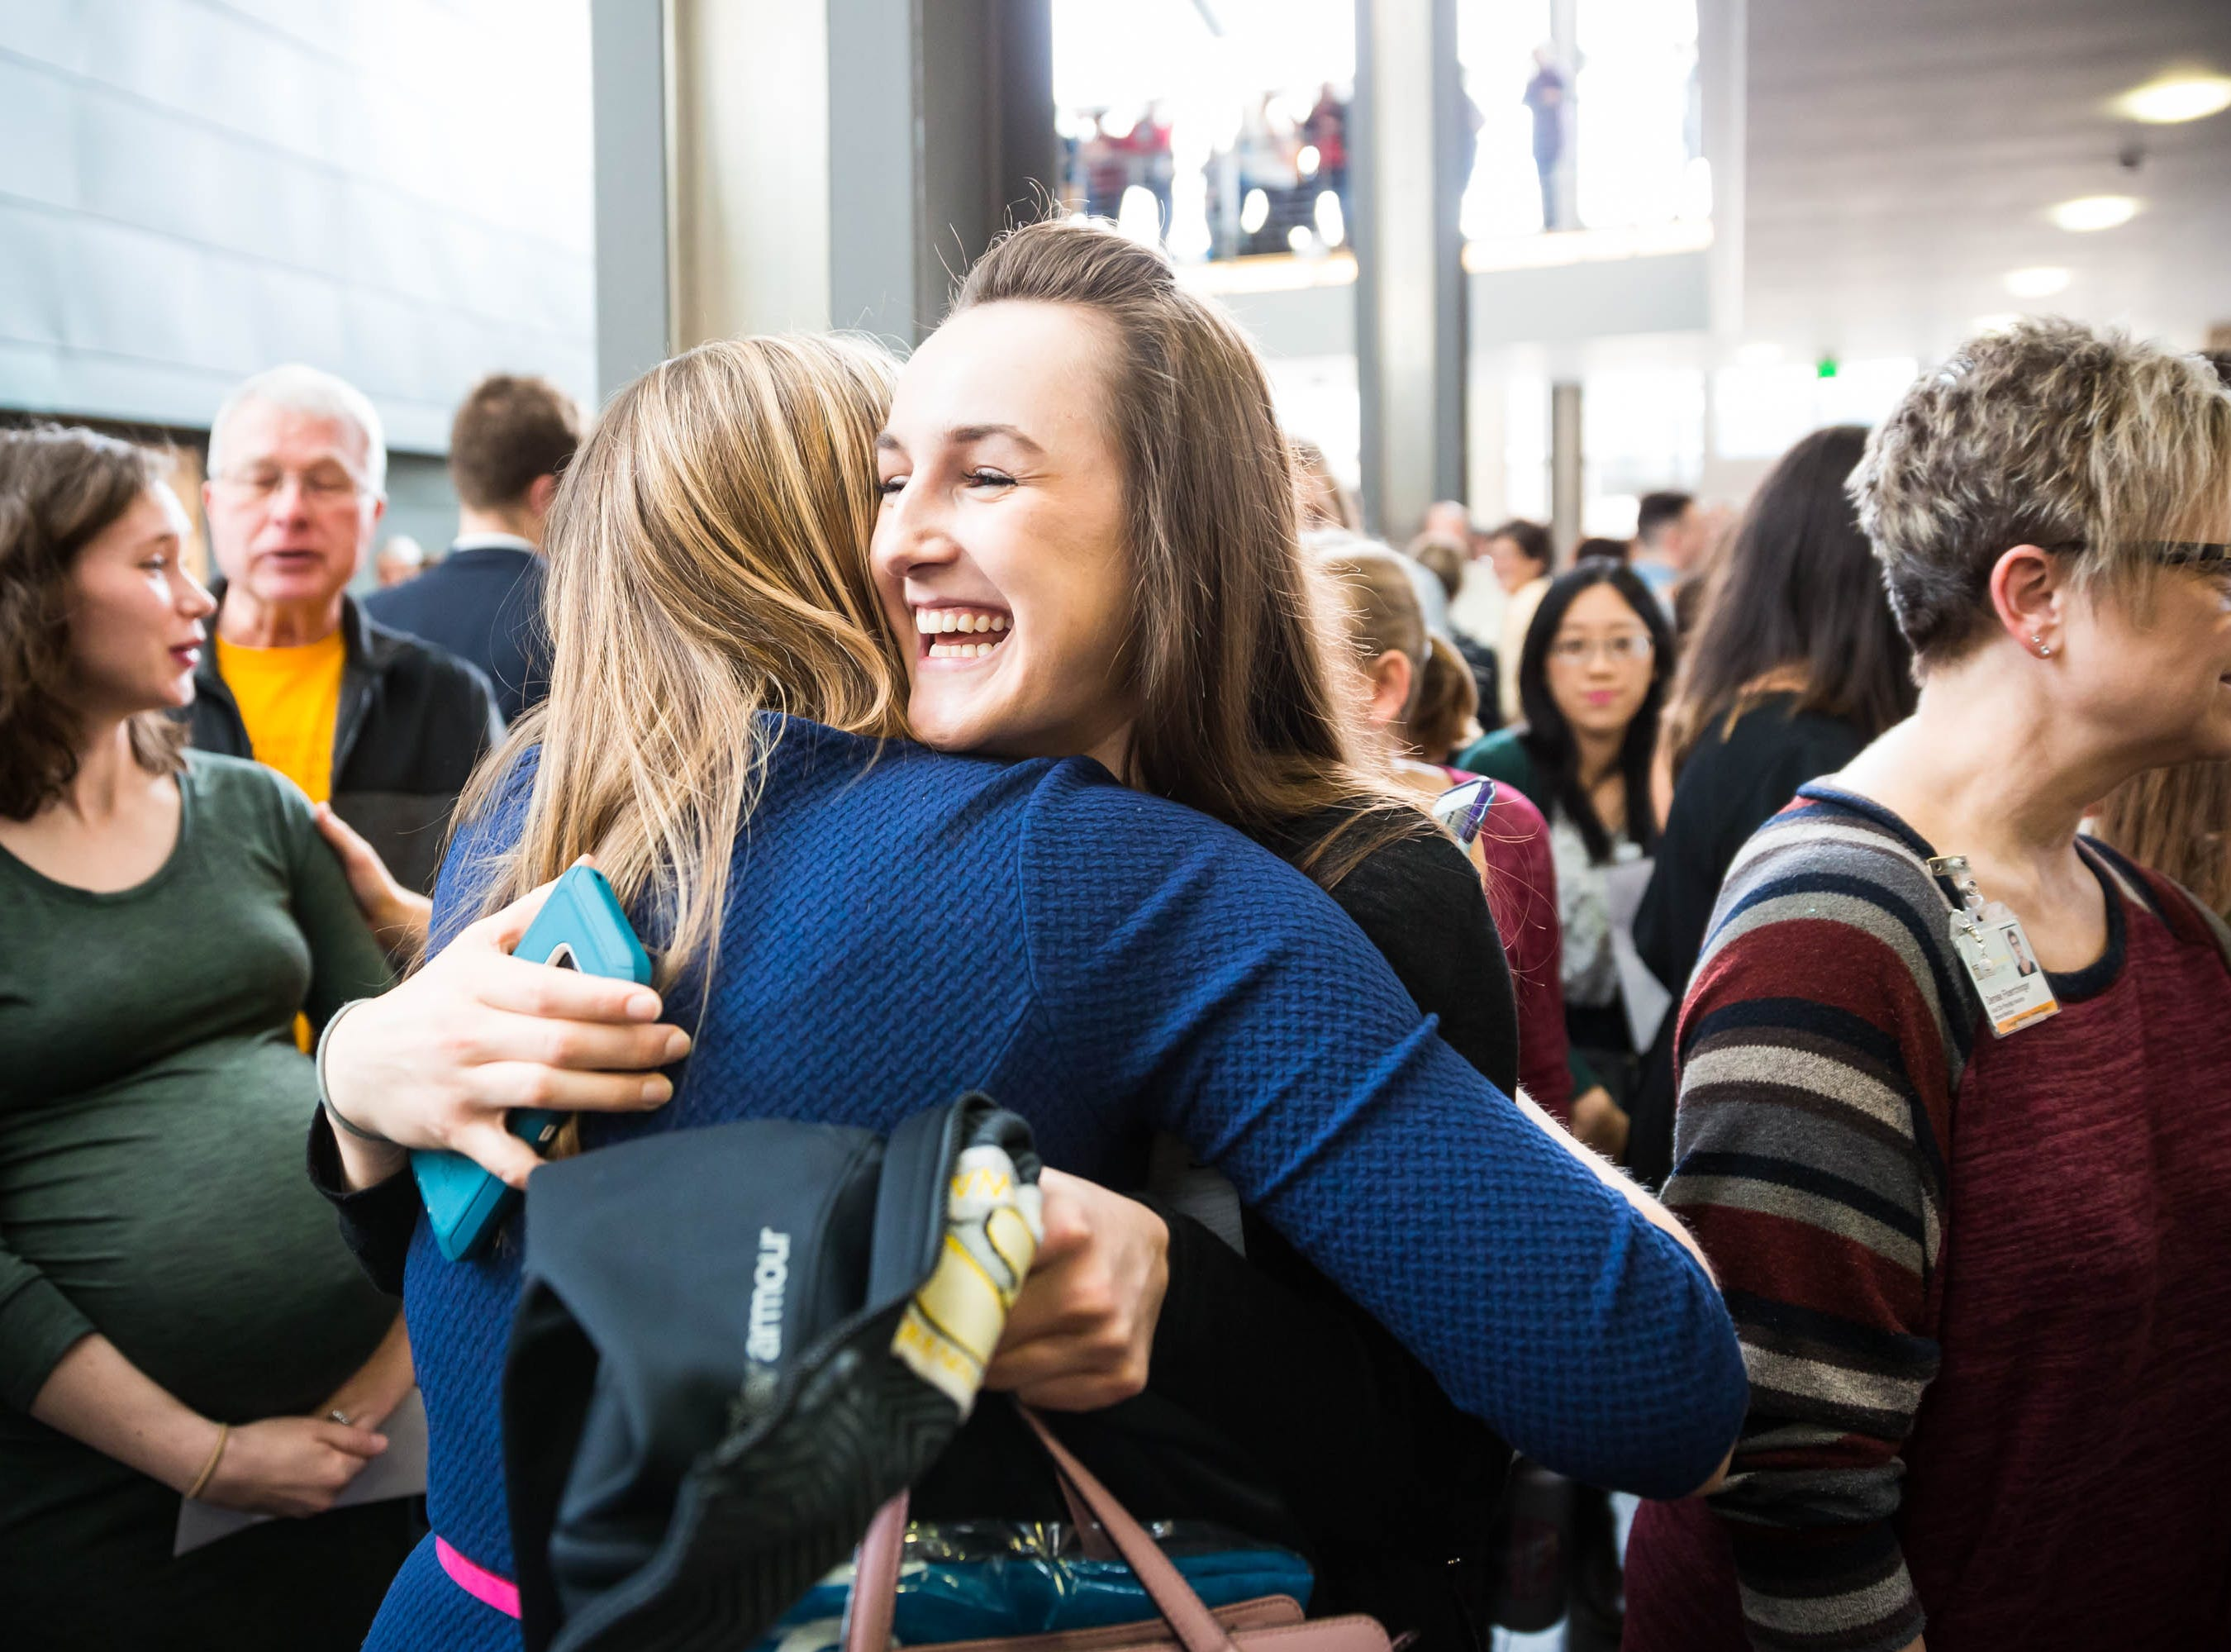 Applicants congratulate each other during Match Day at UIHC in Iowa City on Friday, March 15, 2019.